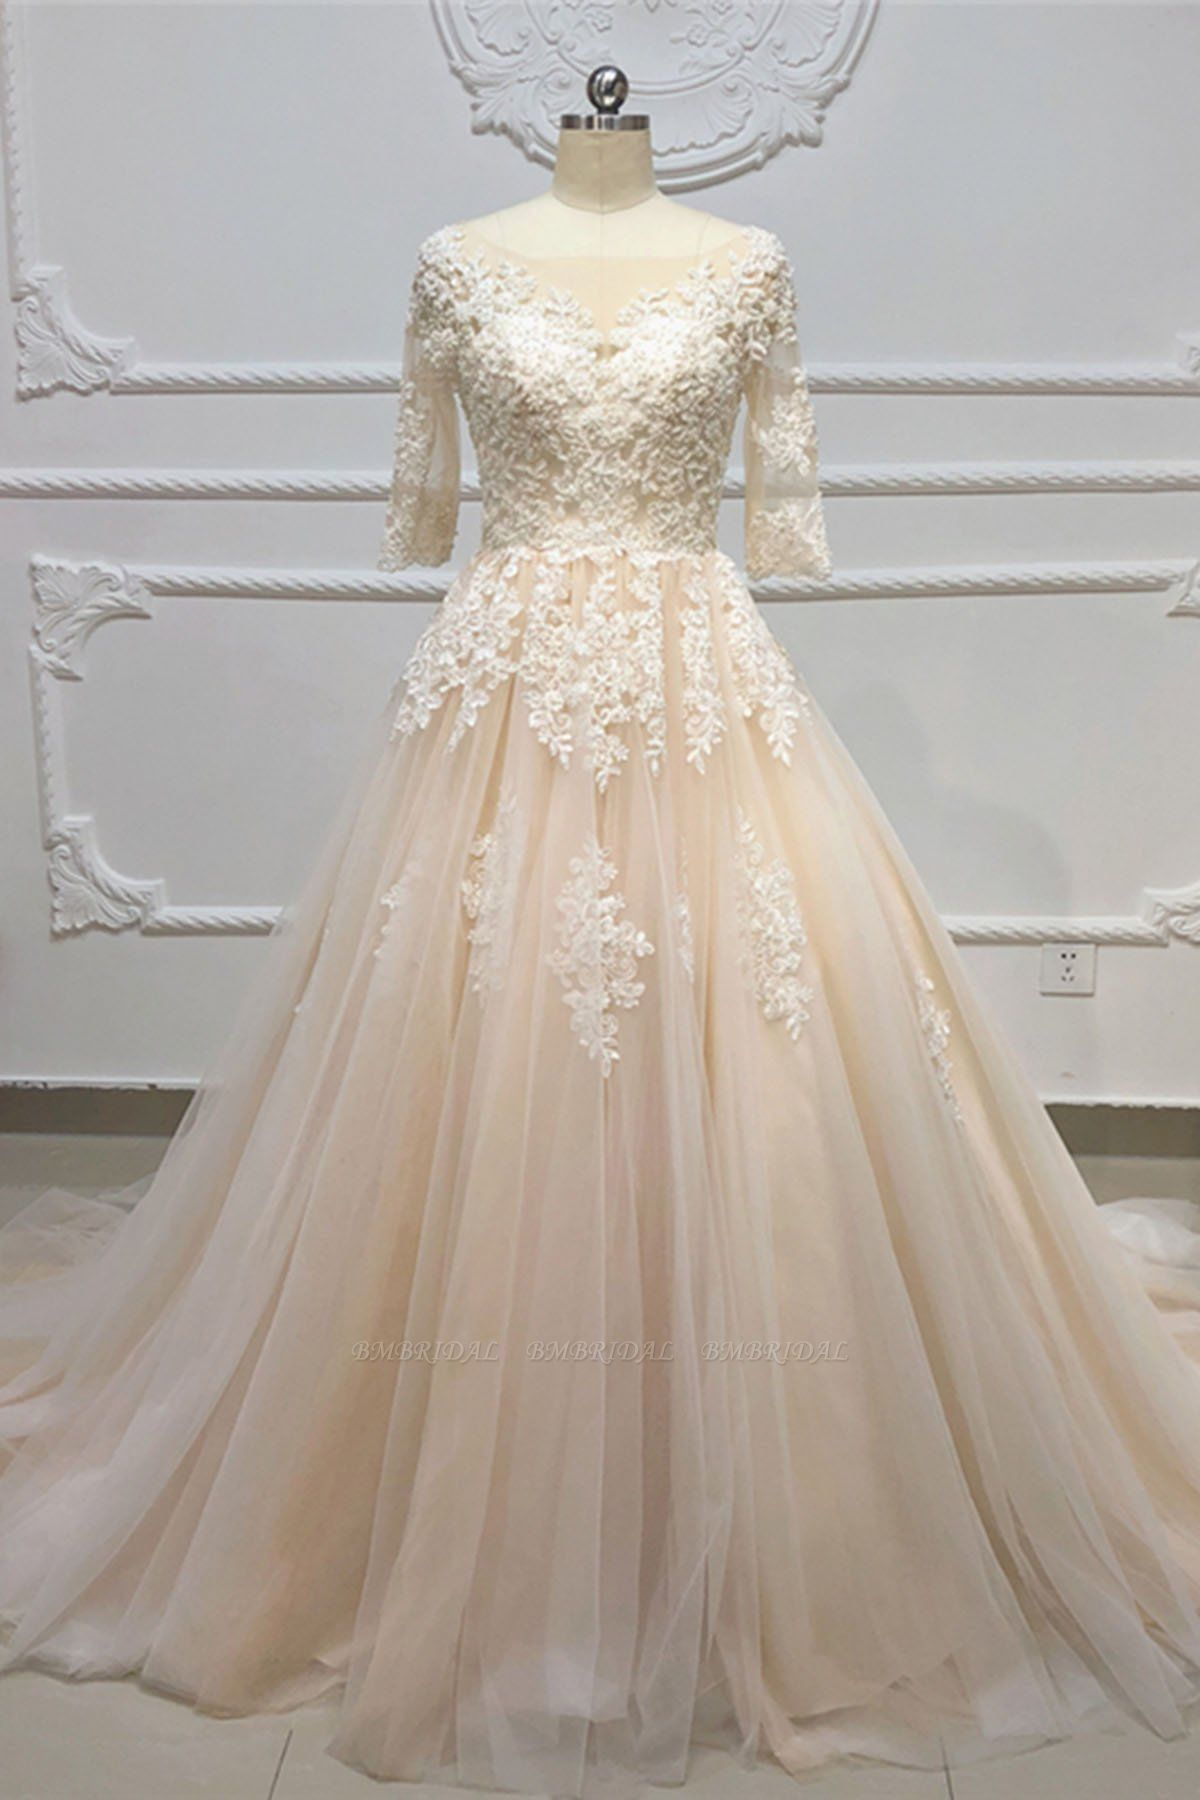 BMbridal Gorgeous Champagne Tulle Half Sleeve Long Wedding Dress White Lace Applique Bridal Gowns On Sale